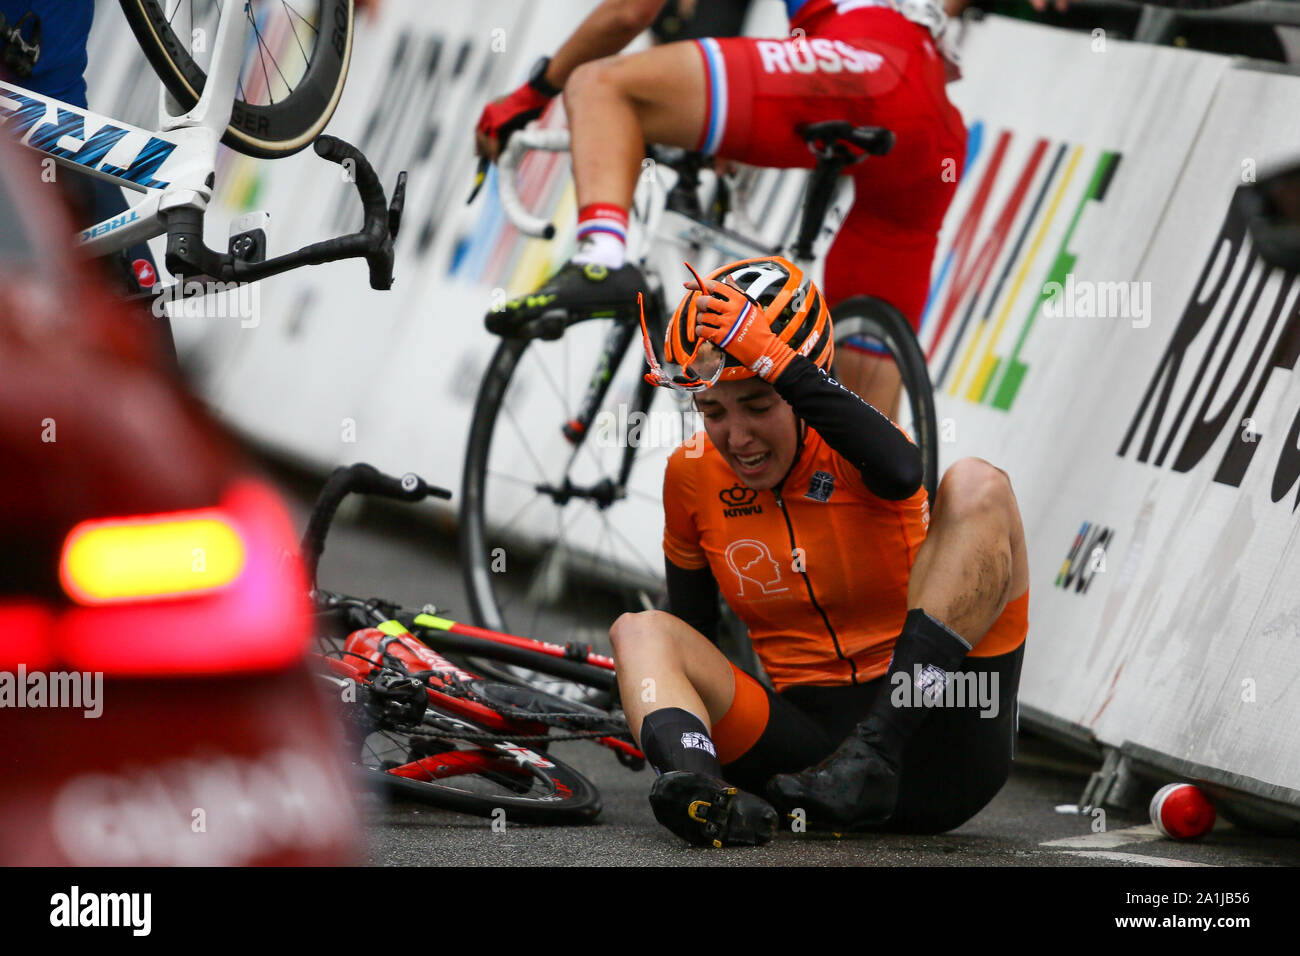 Harrogate, UK. 27th September 2019. Riders are down following a crash on the finish straight at the 2019 UCI Road World Championships Womens Junior Road Race. September 27, 2019 Credit Dan-Cooke/Alamy Live News Stock Photo